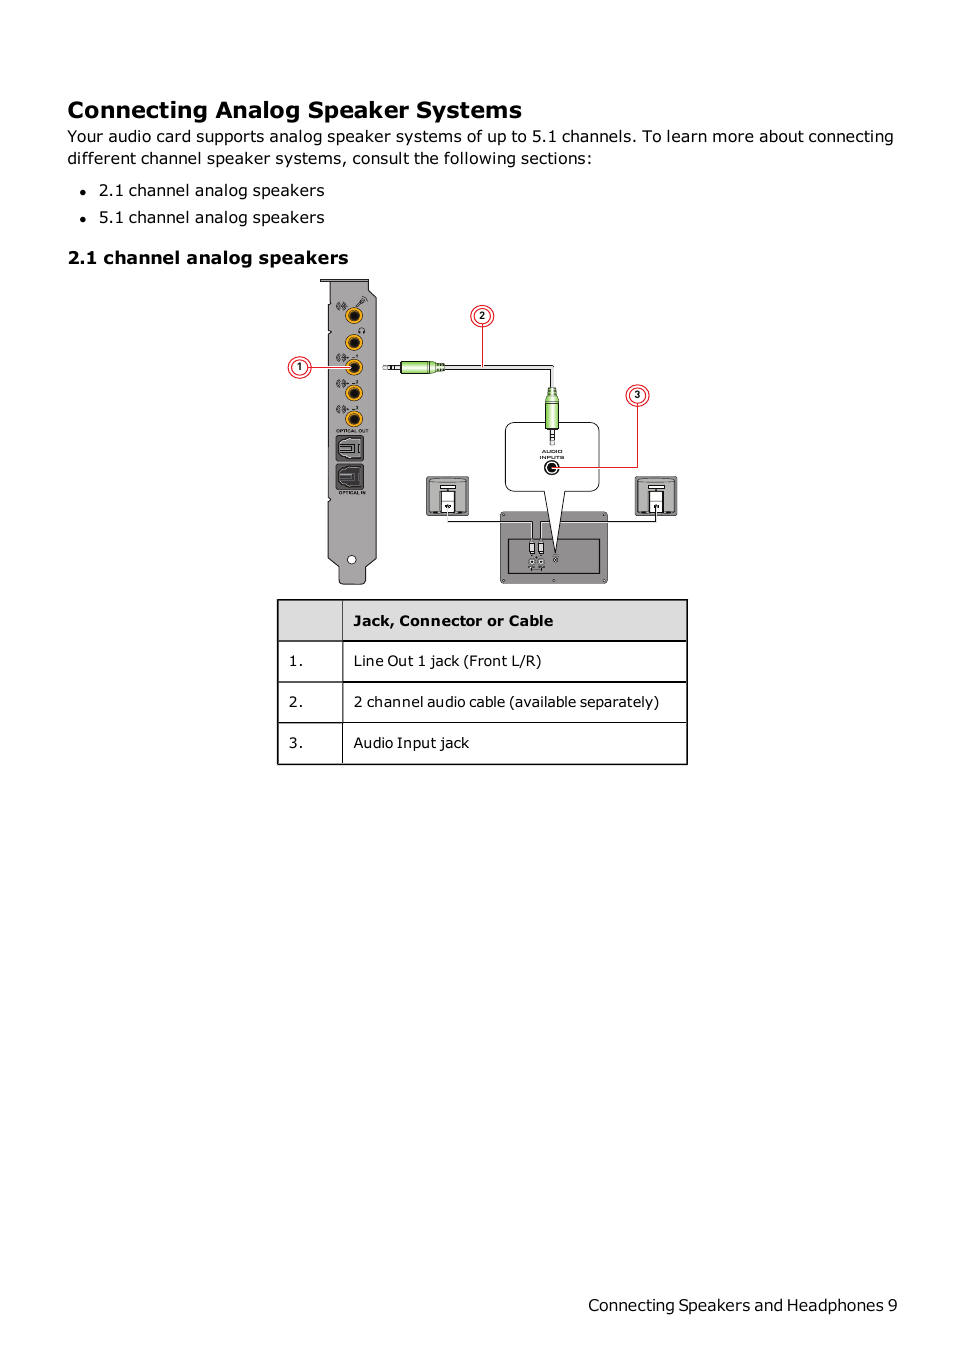 Connecting analog speaker systems, 1 channel analog